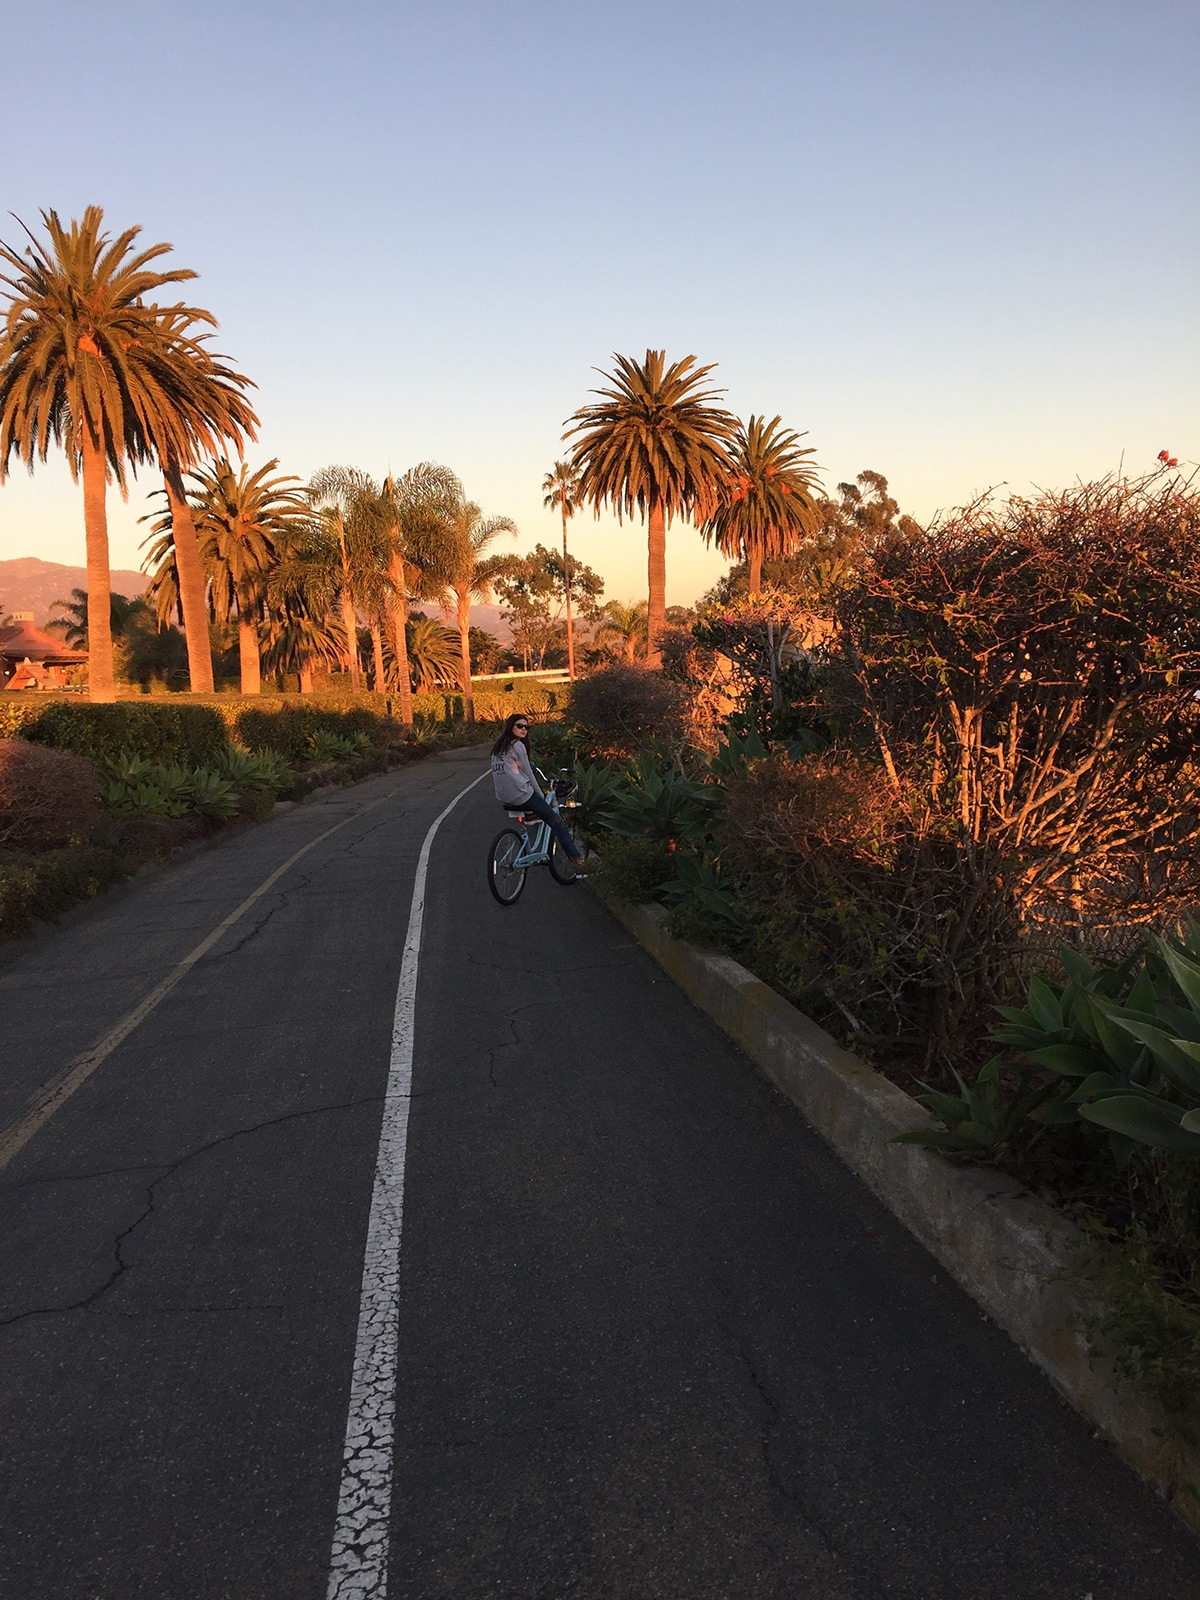 A girl rides her bike on a narrow bitumen road that leads through dense natural plantations at golden hour